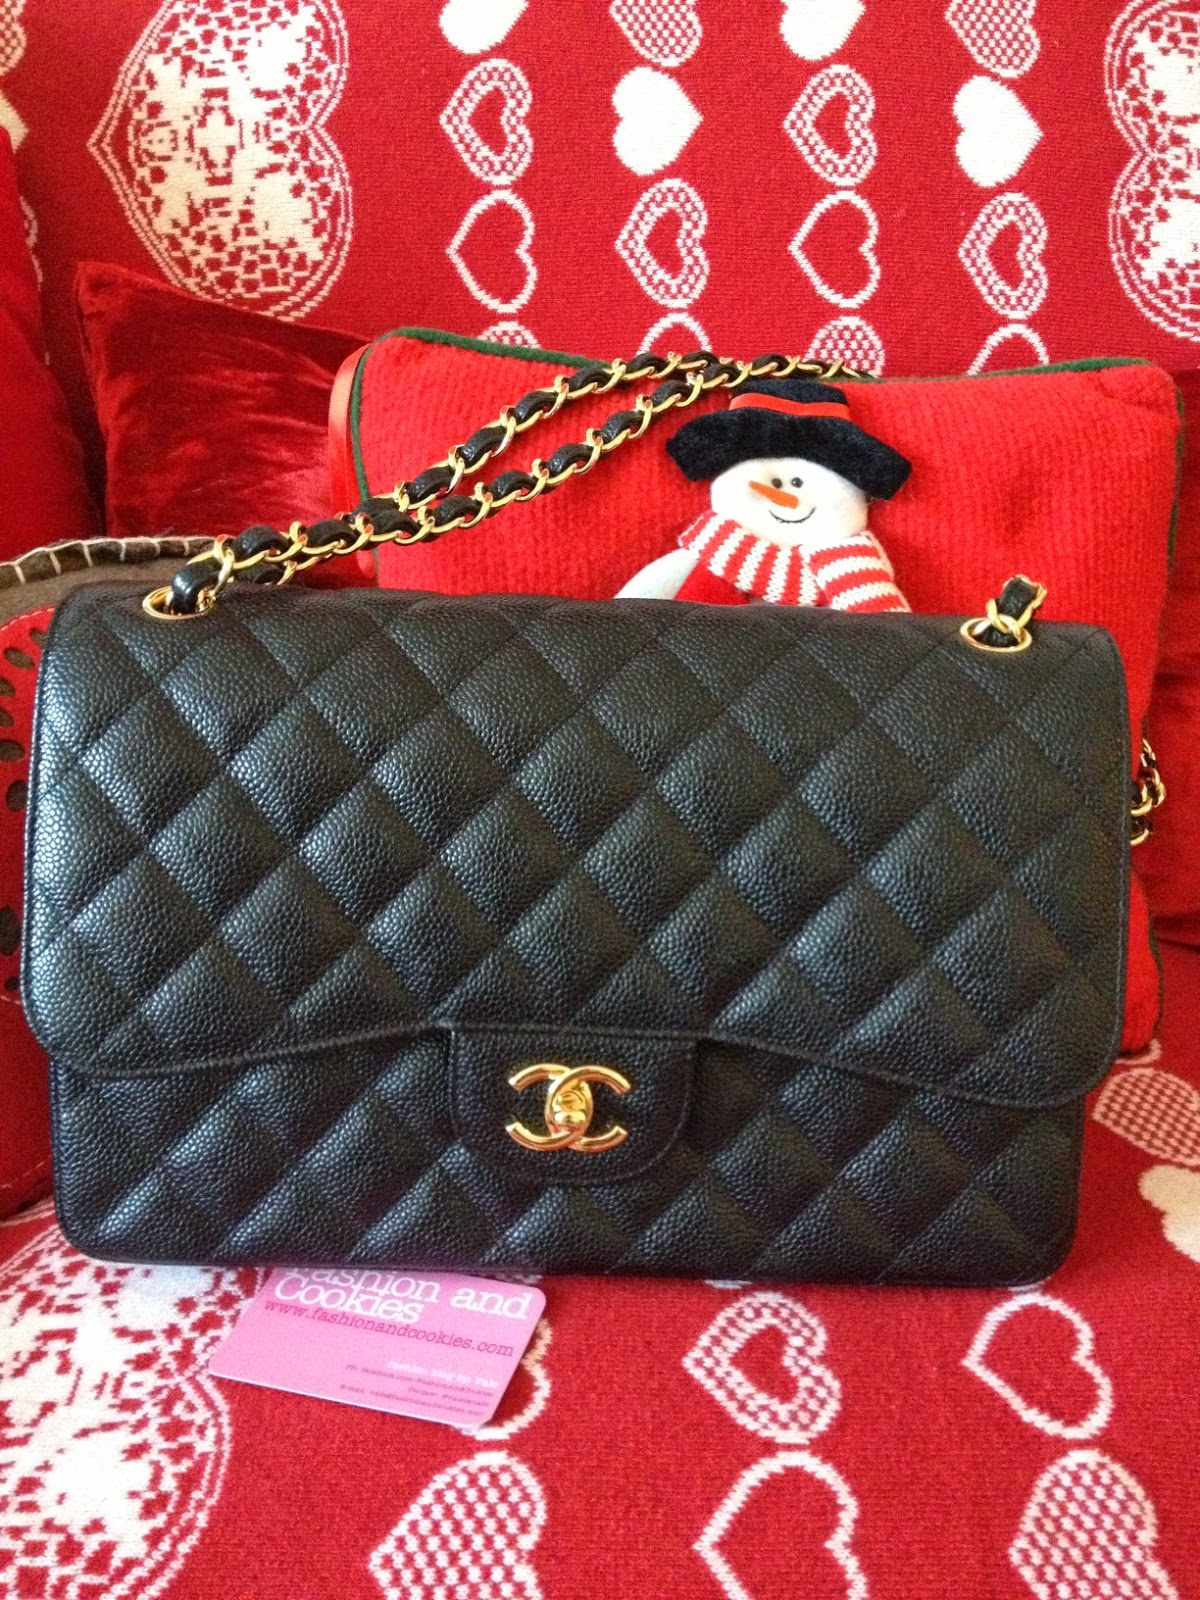 5b8e2233c55992 My first Chanel Classic Flap bag | Fashion and Cookies | Bloglovin'